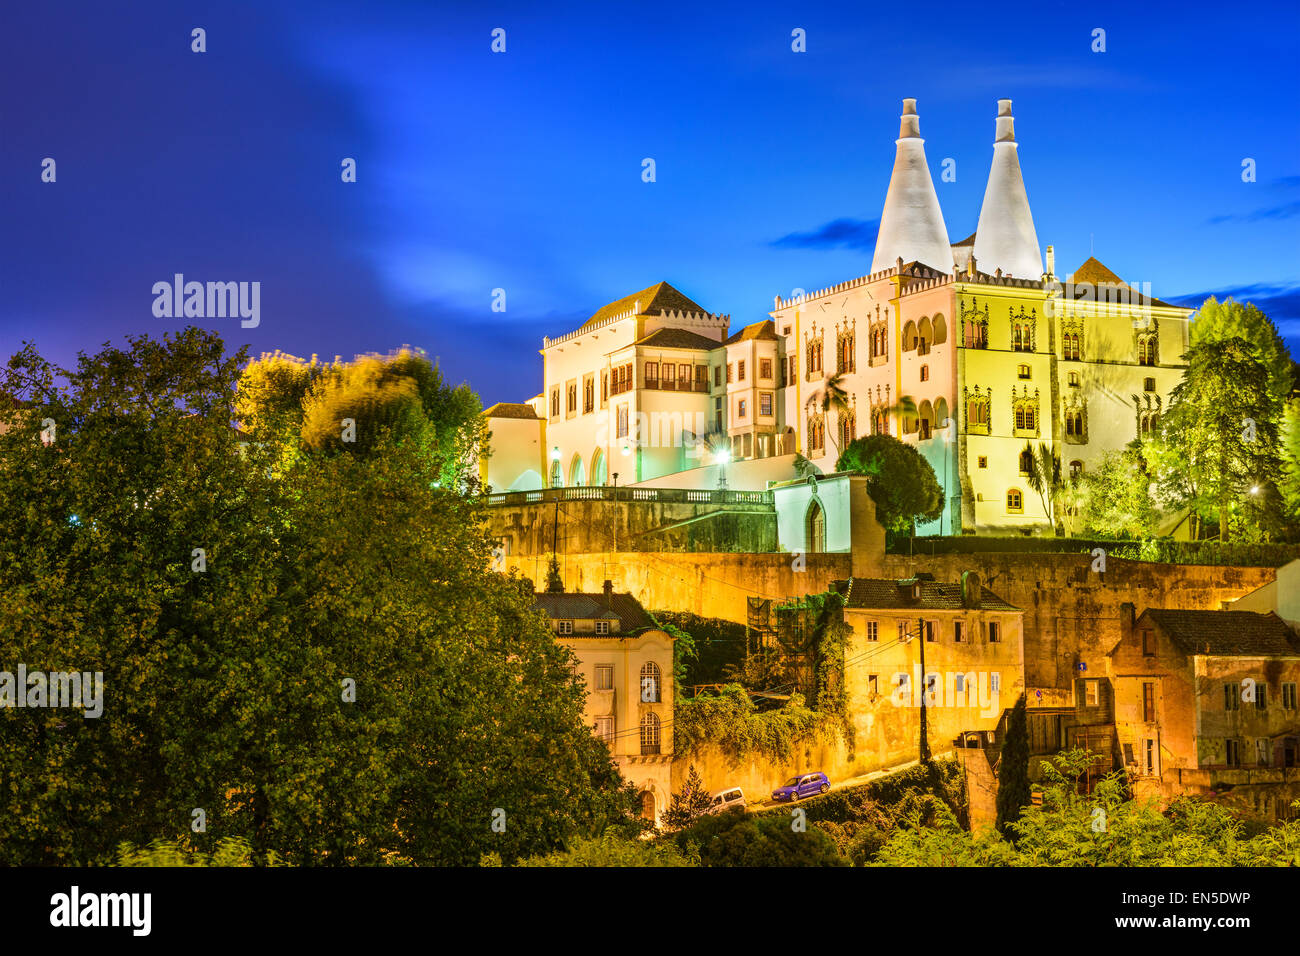 Sintra, Portugal at Sintra National Palace. - Stock Image